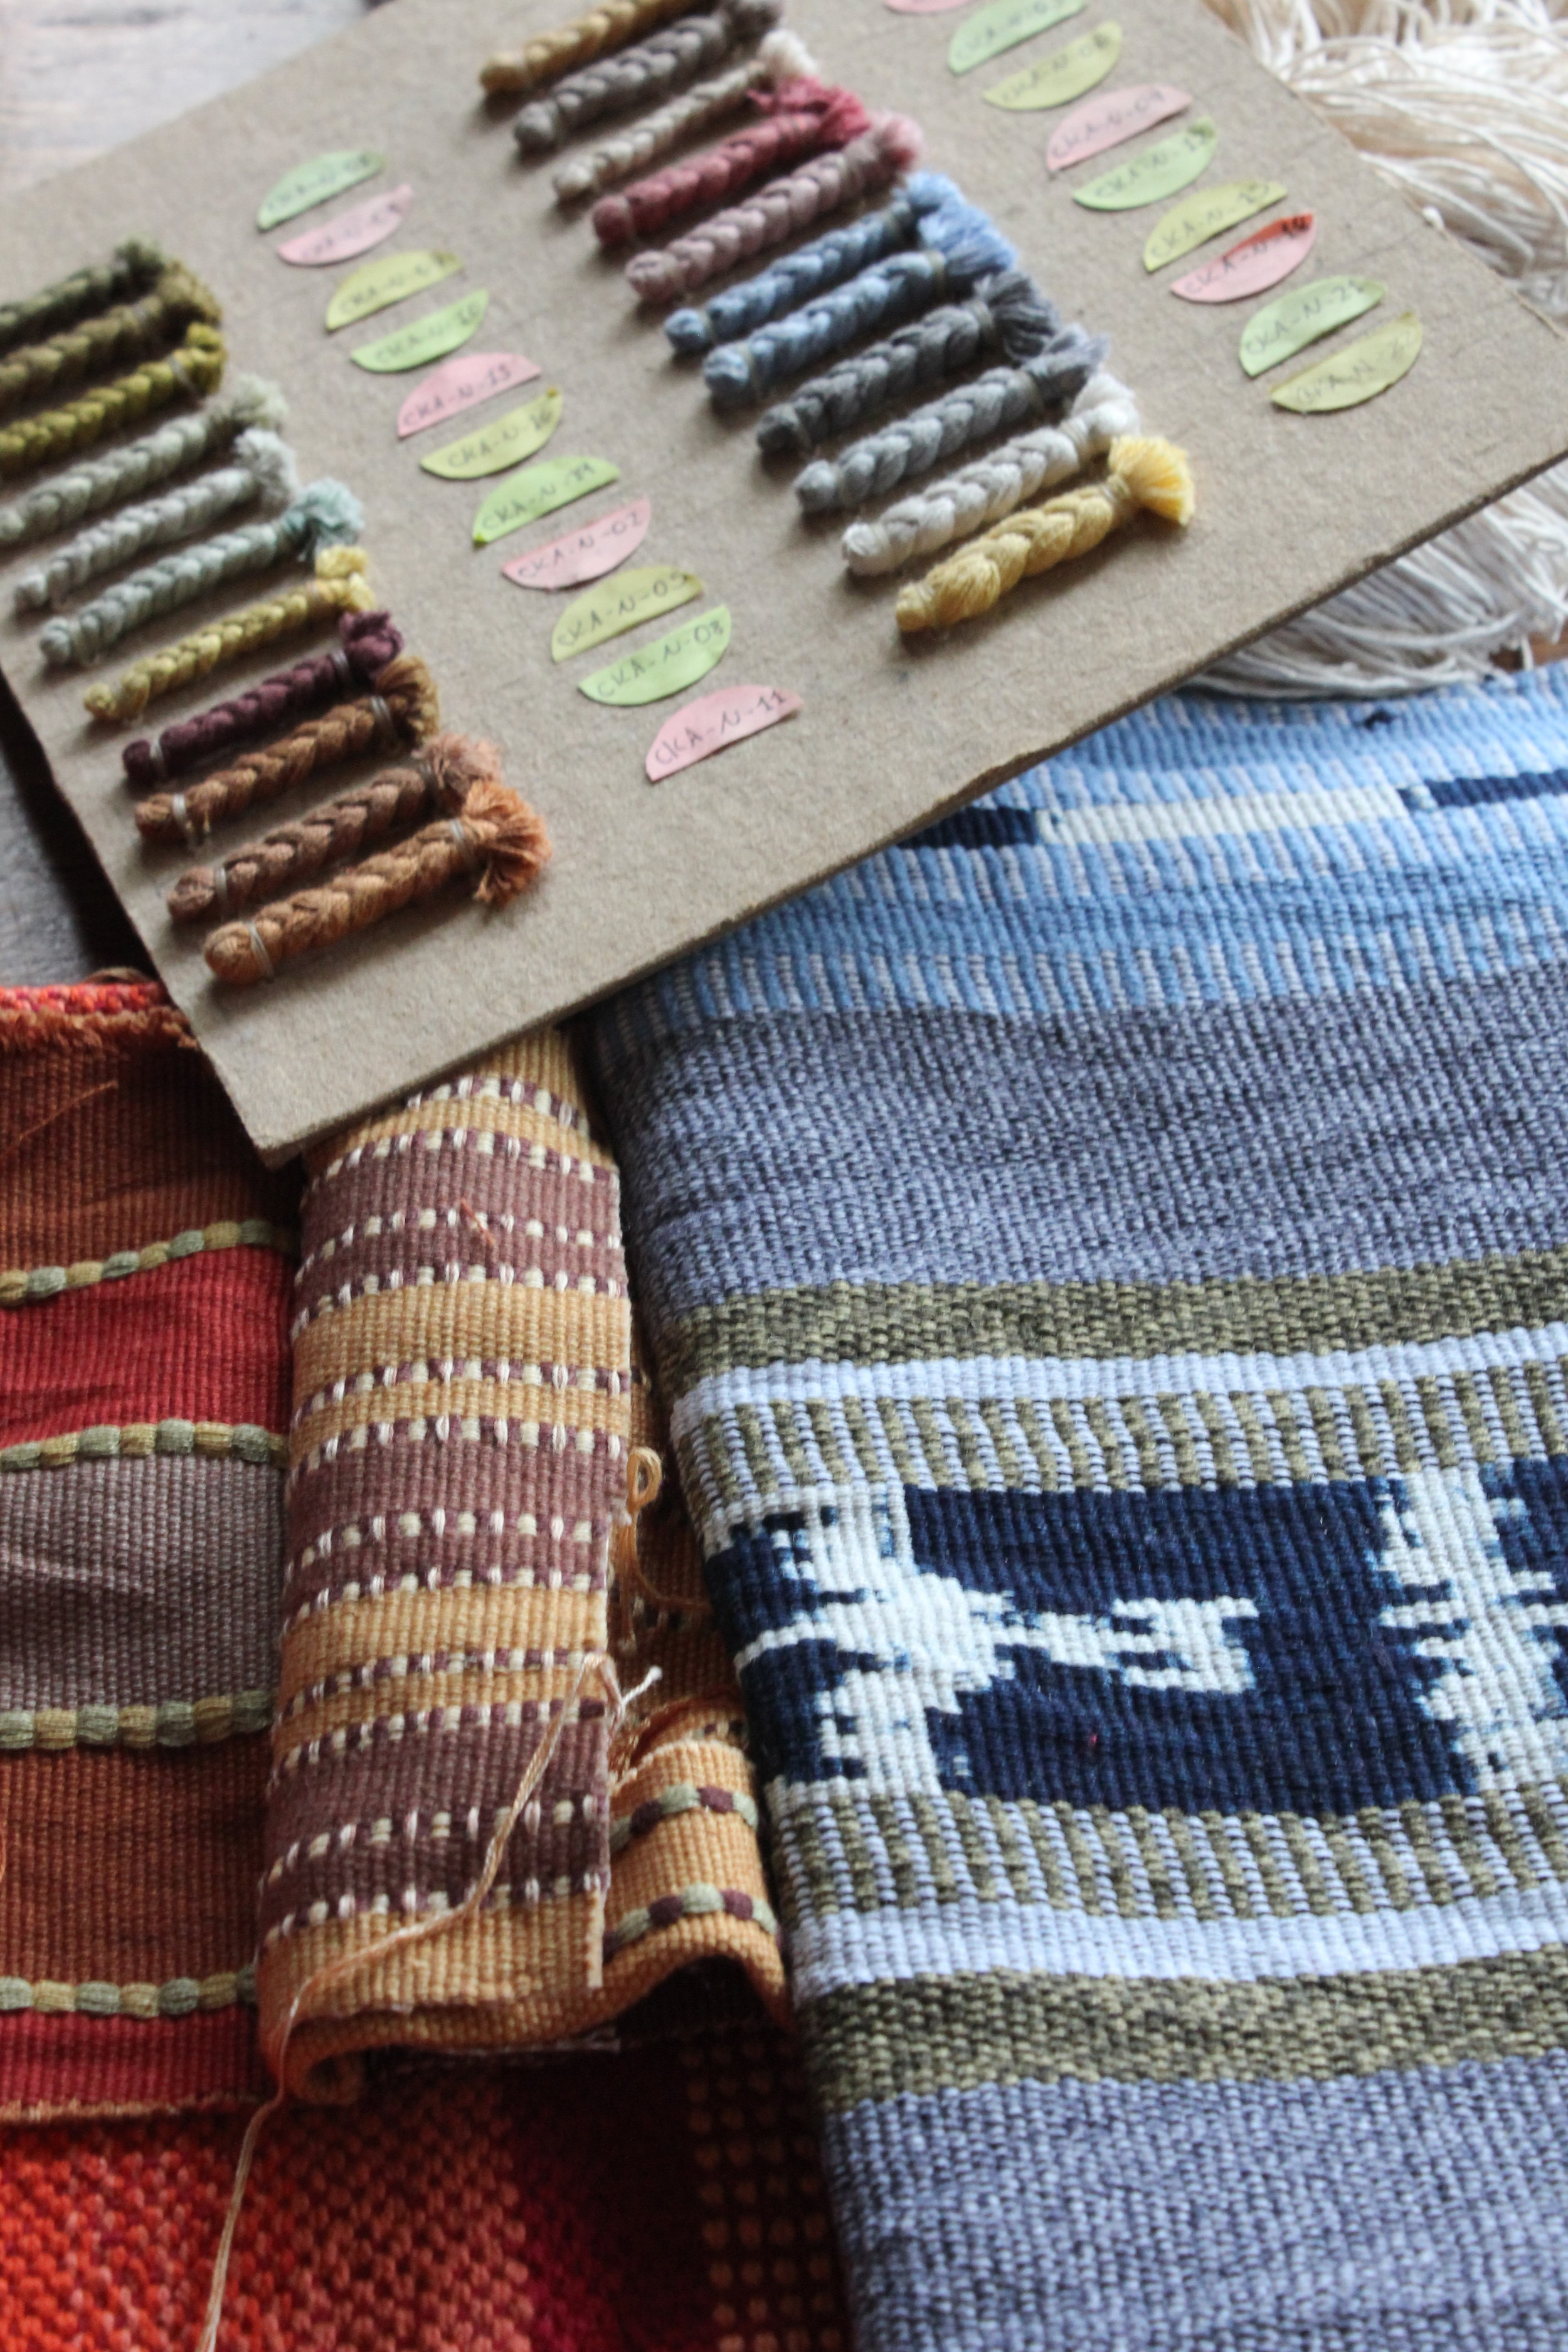 Cotton fabric handwoven in Guatemala after naturally dyed